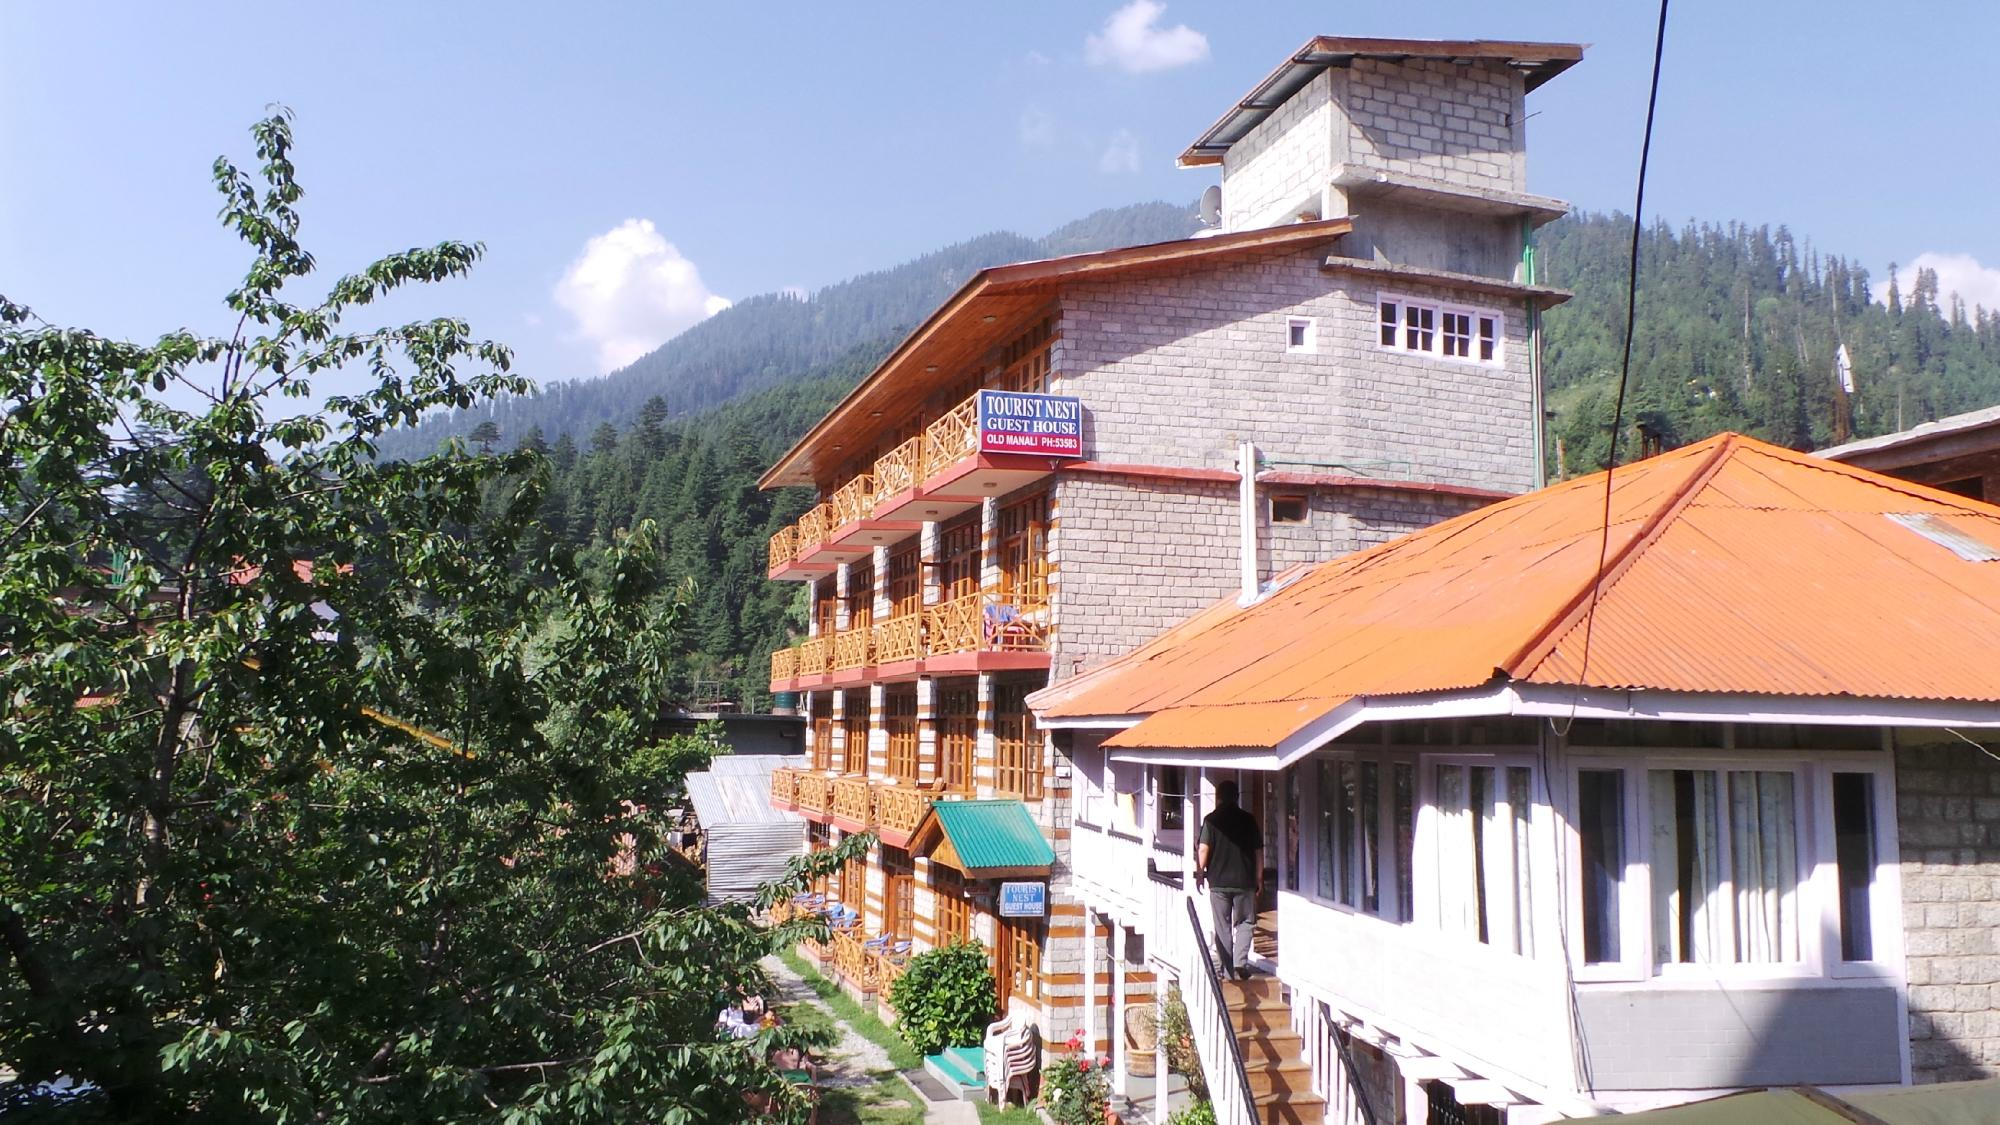 Tourist Nest Old Manali